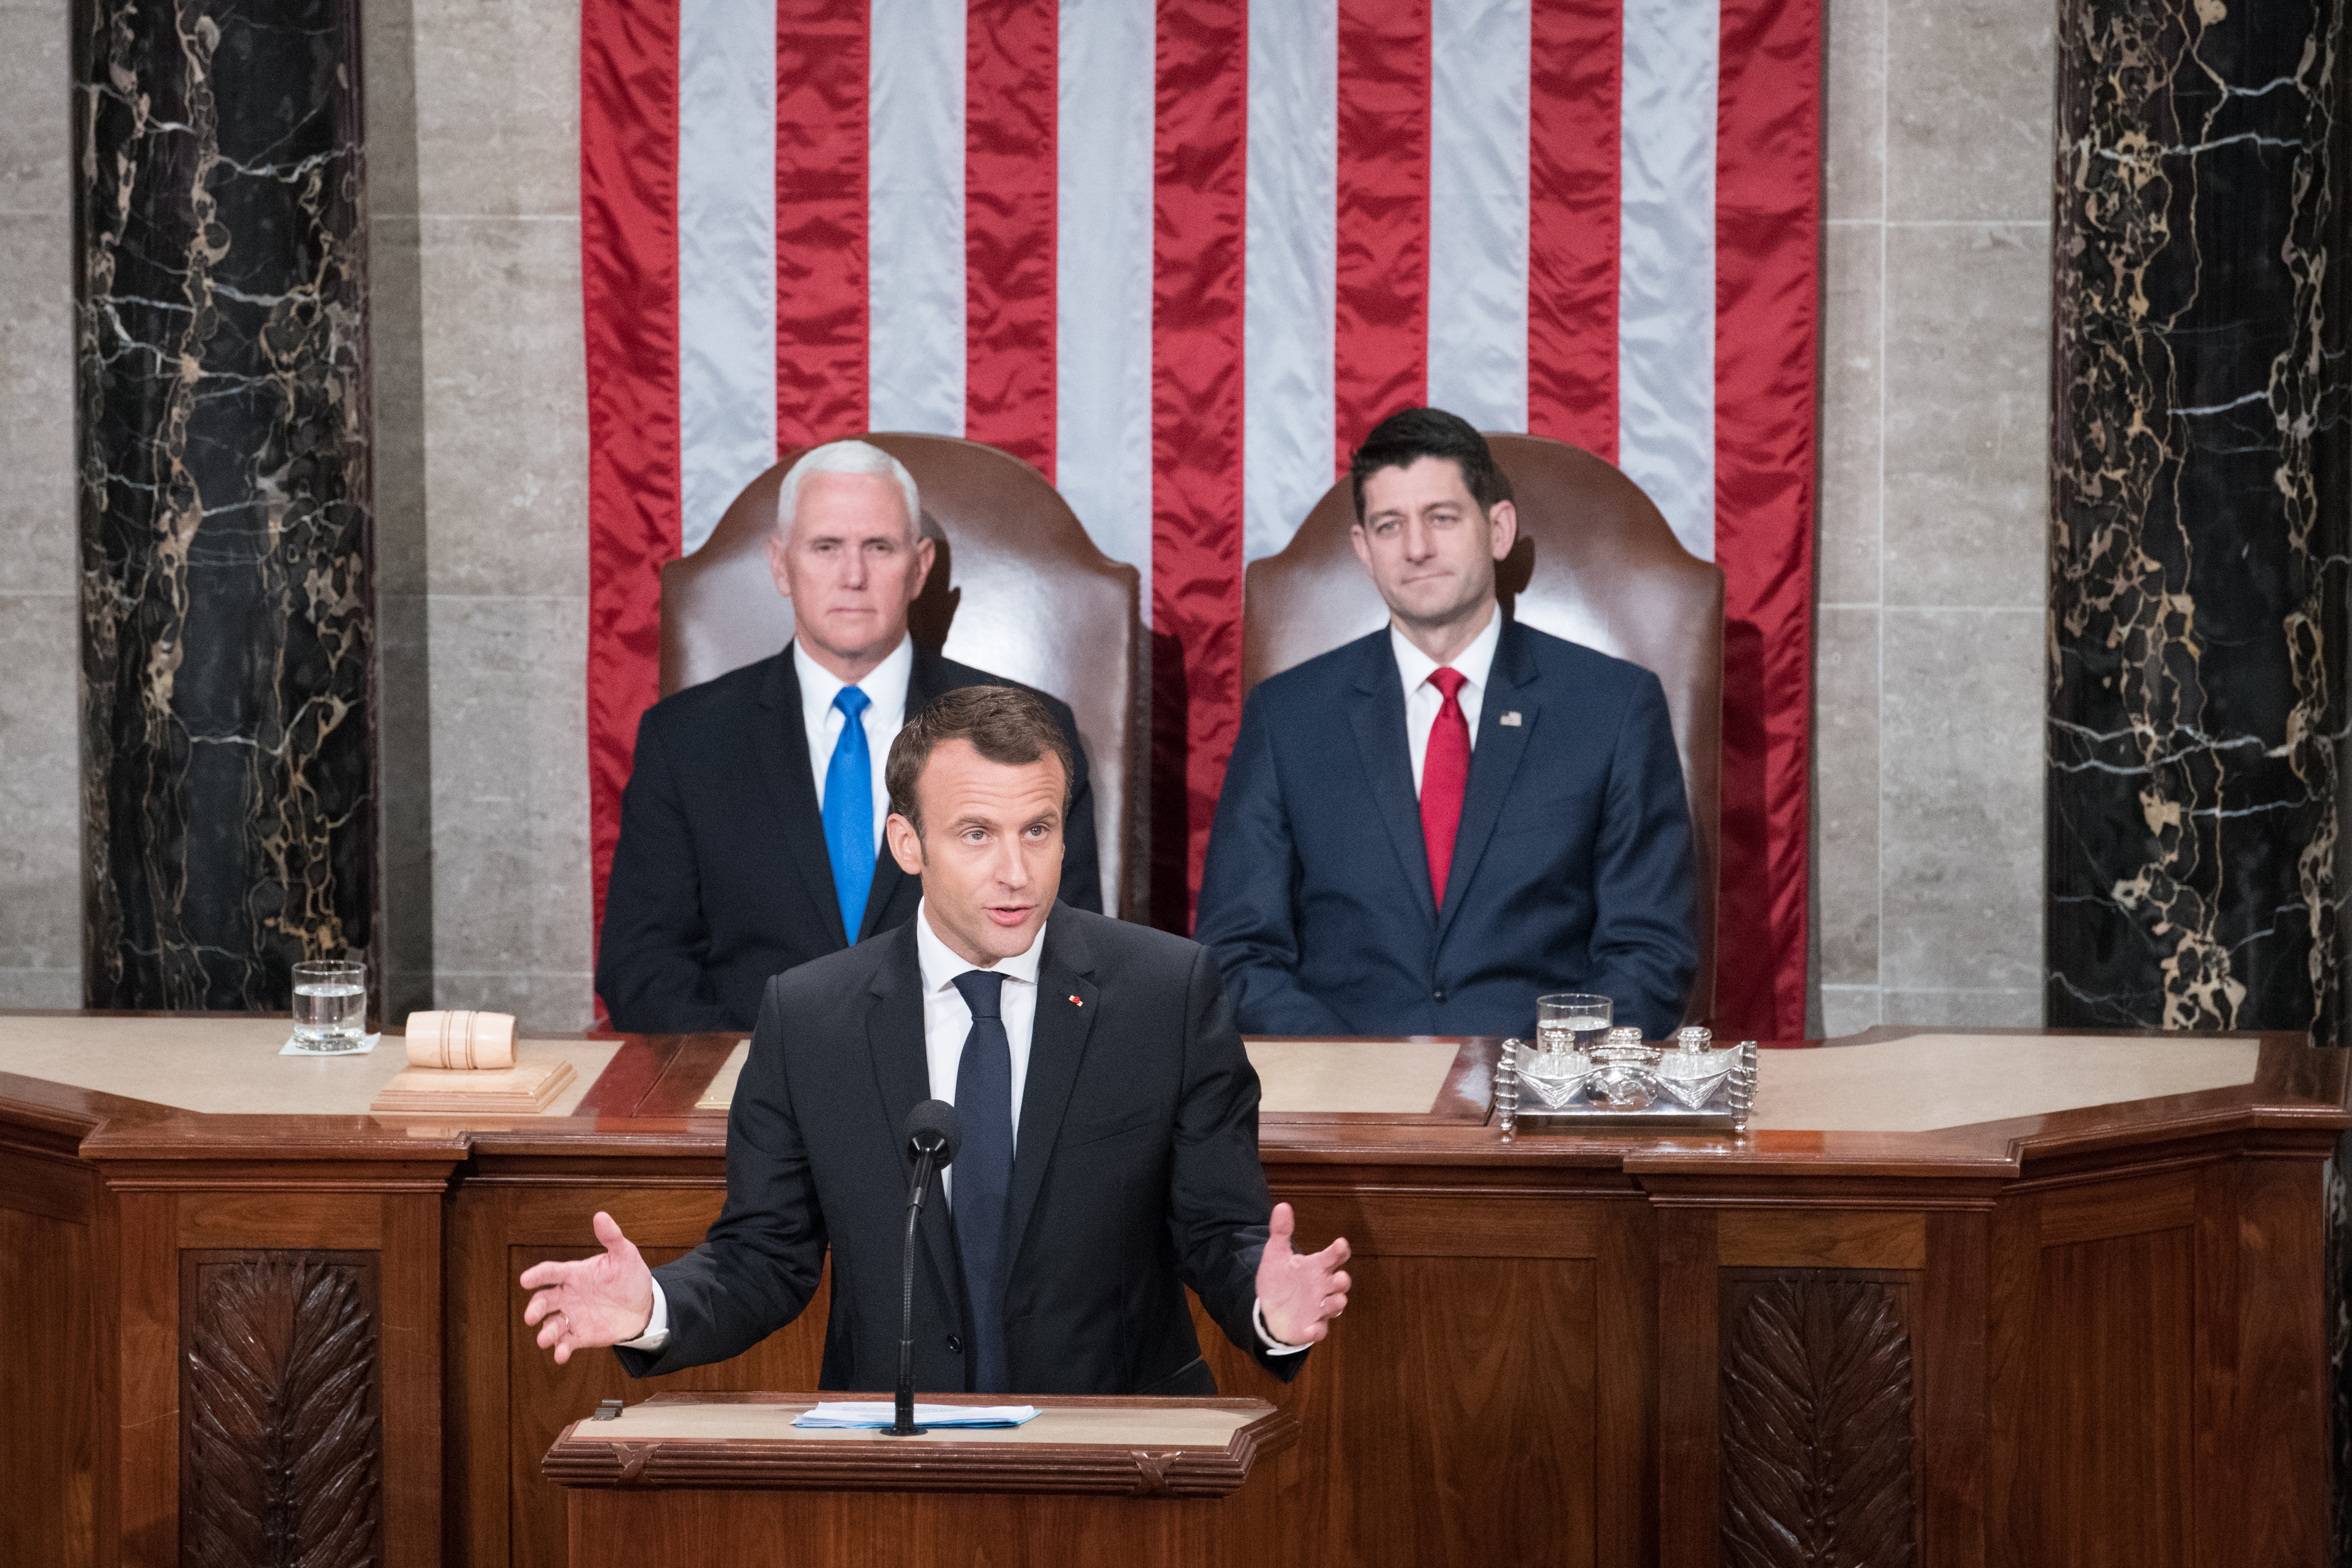 French President Macron flanked by Vice President Pence and Speaker Ryan